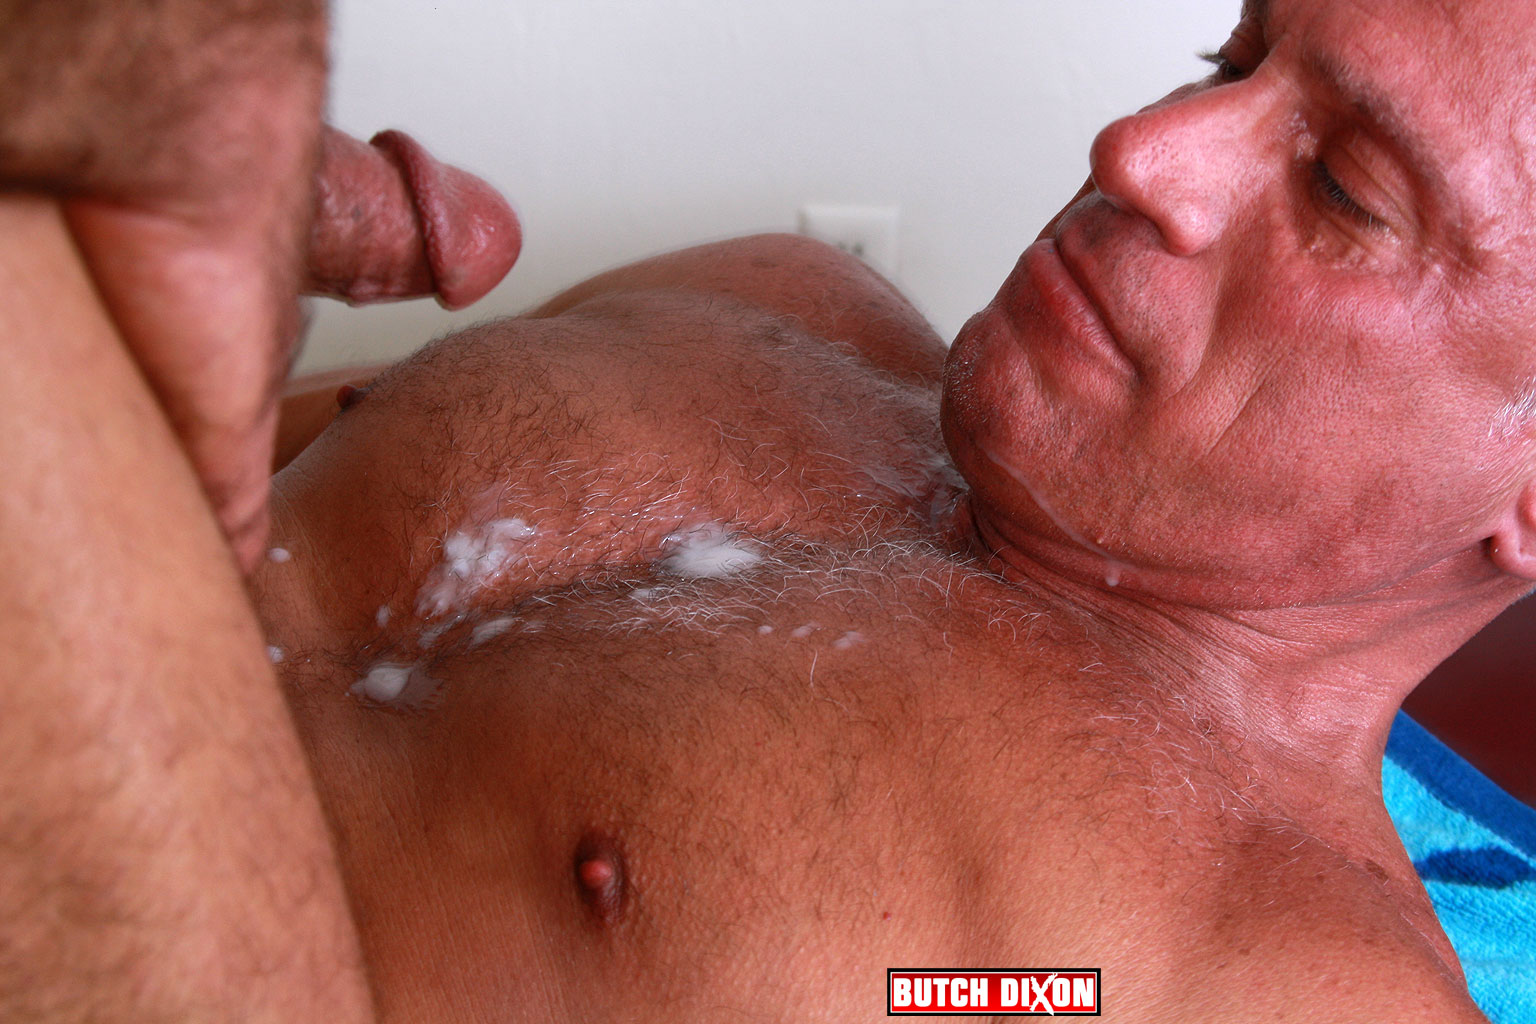 Butch-Dixon-Jeff-Grove-and-Josh-Ford-Hairy-Daddies-Fucking-with-this-Hairy-Daddy-Cock-15 Jeff Grove and Josh Ford:  Amateur Hairy Daddies Barebacking